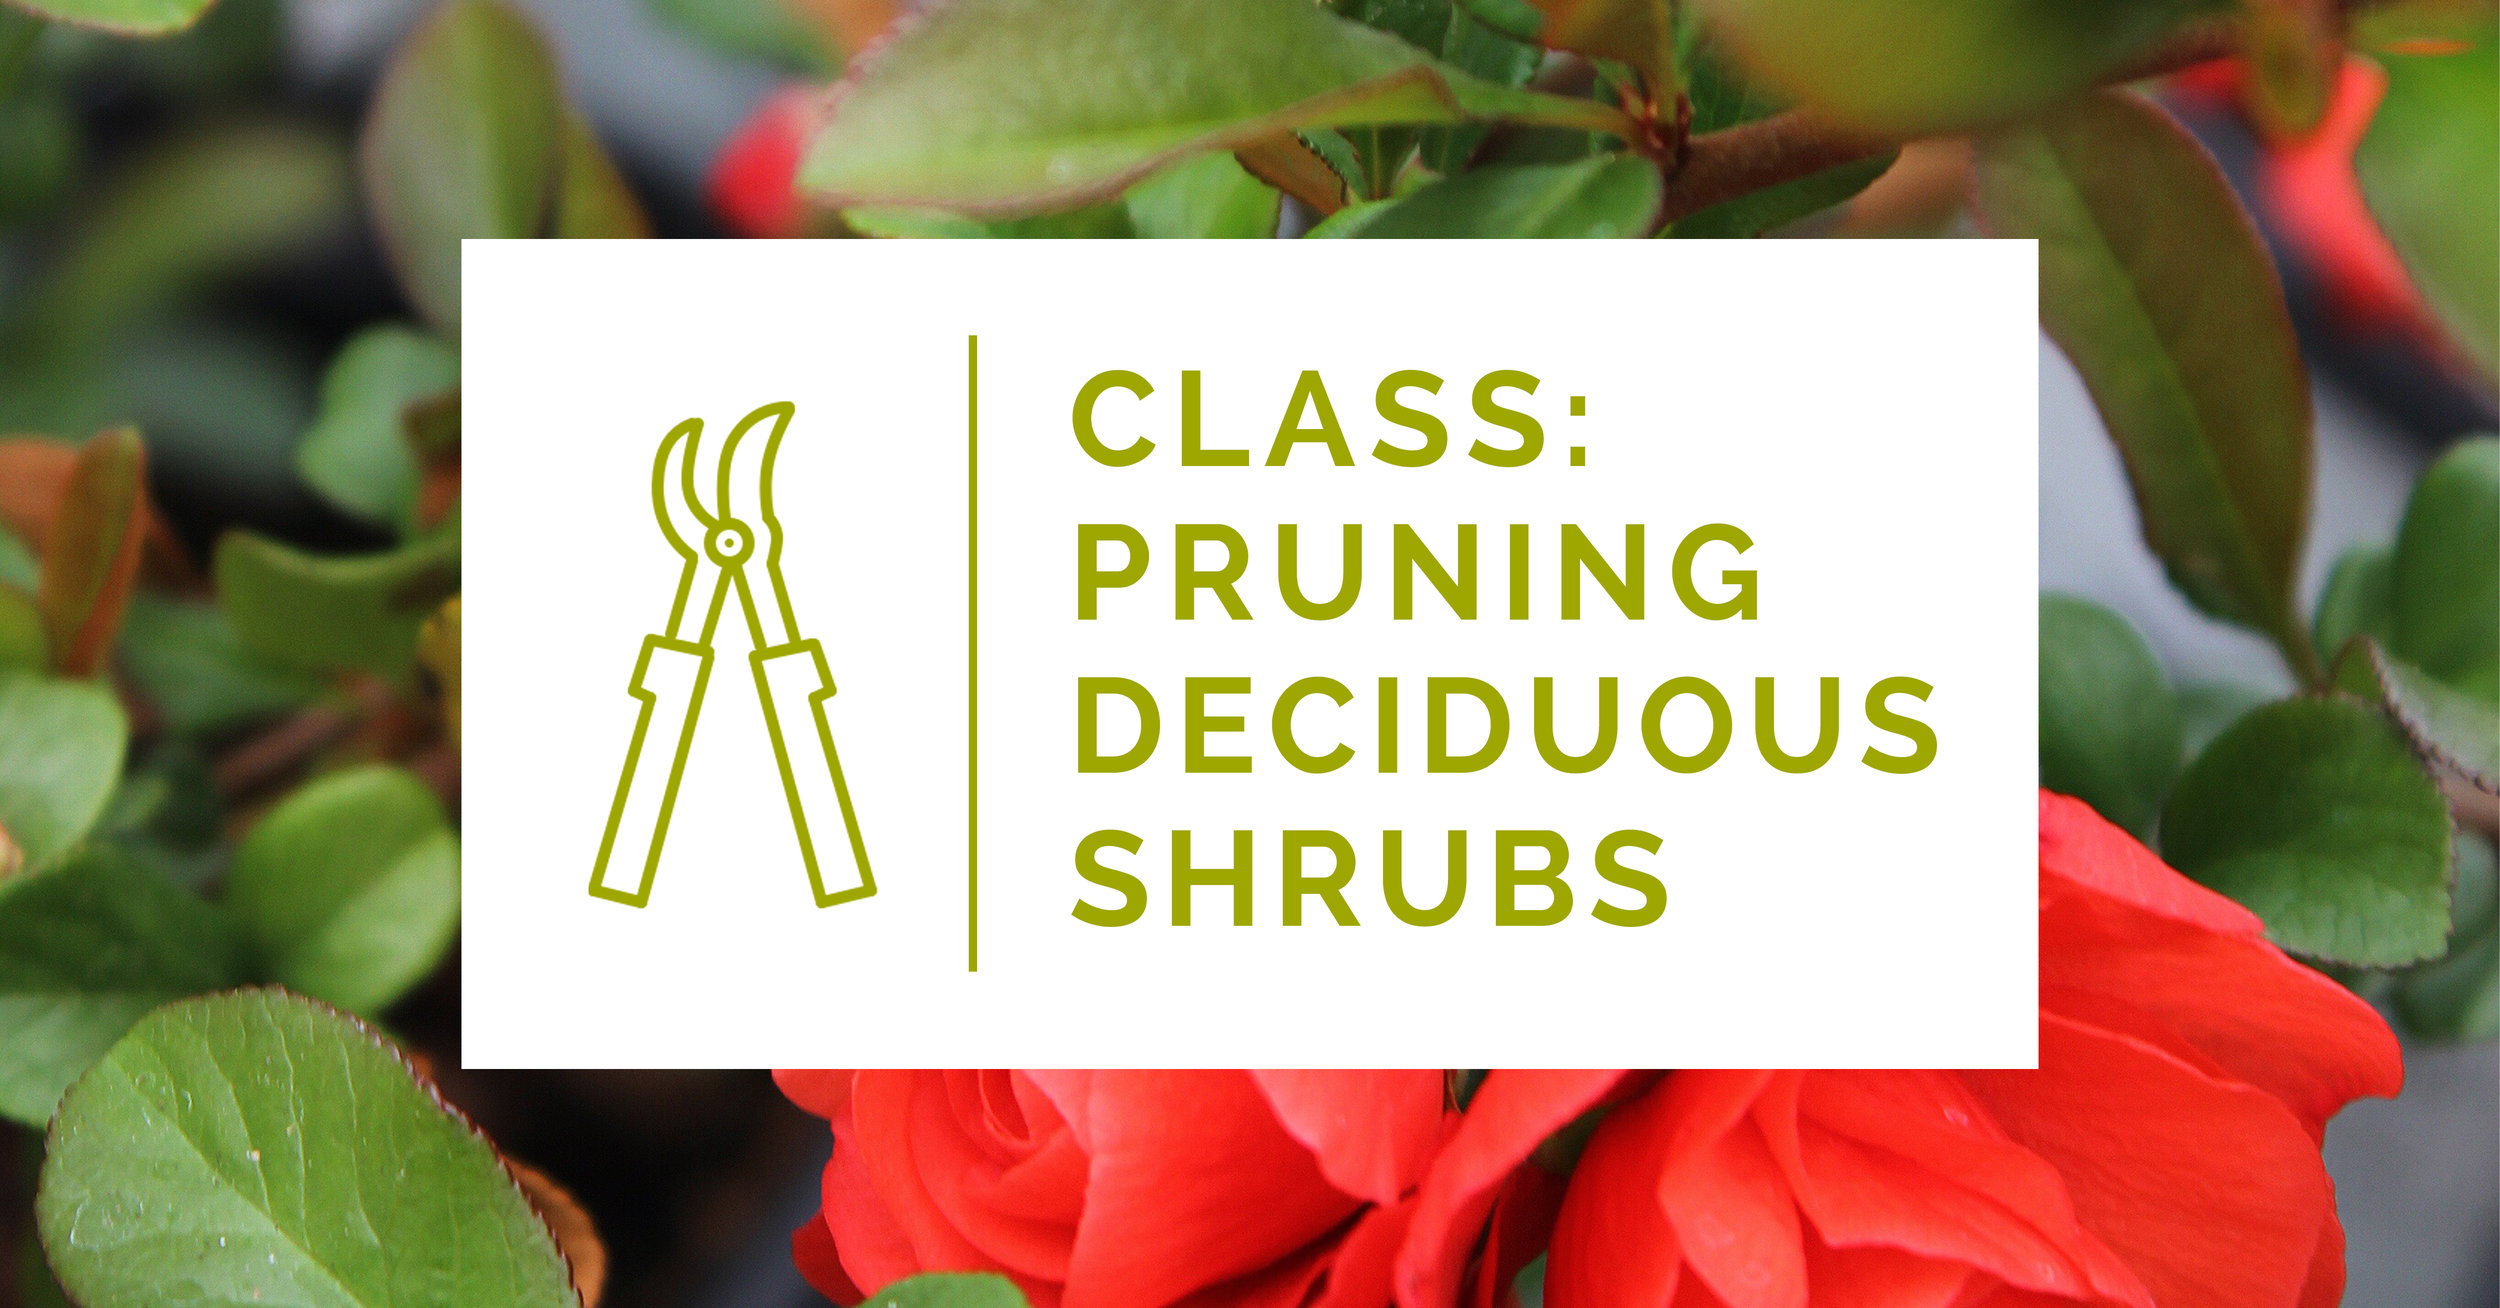 pruning deciduous shrubs.jpg